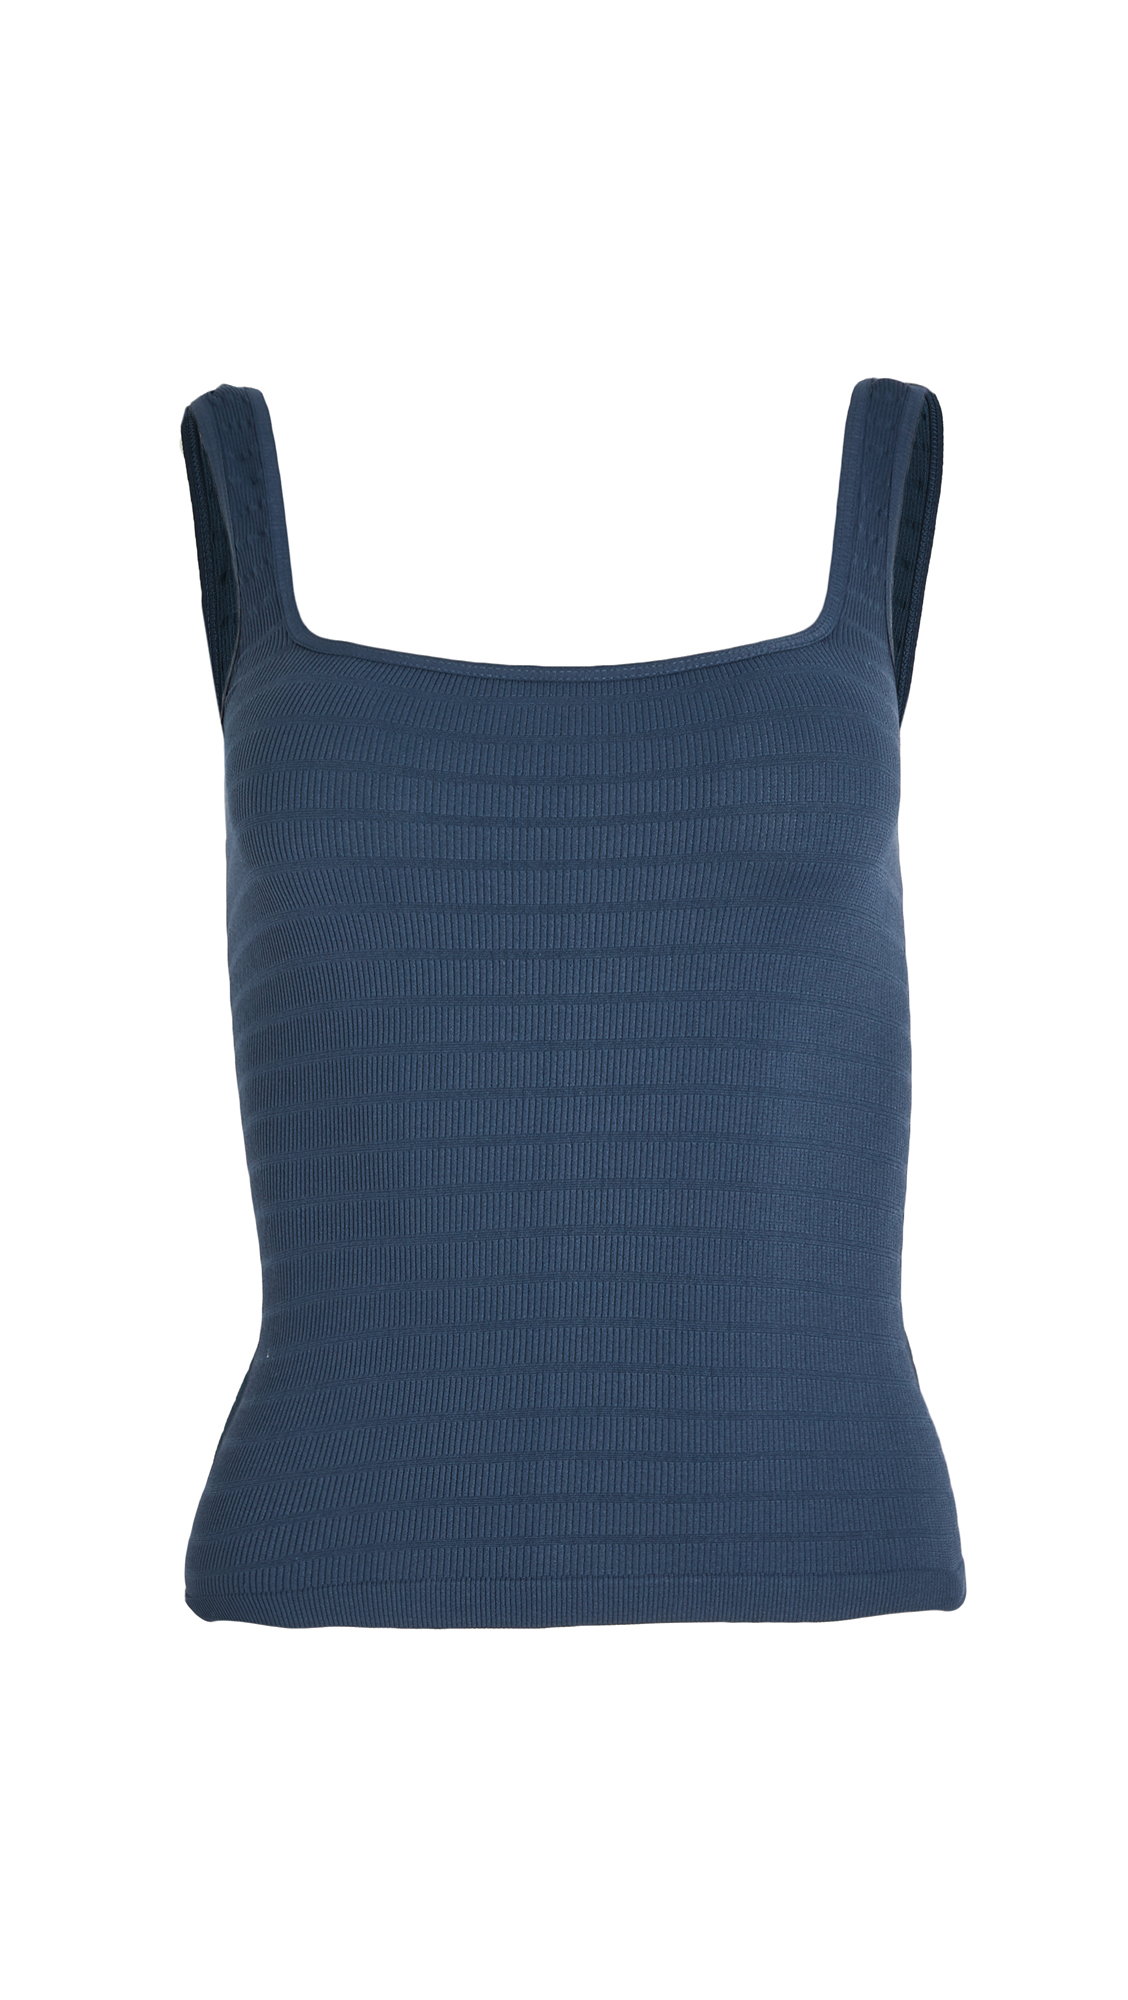 Free People Square One Seamless Cami - Navy